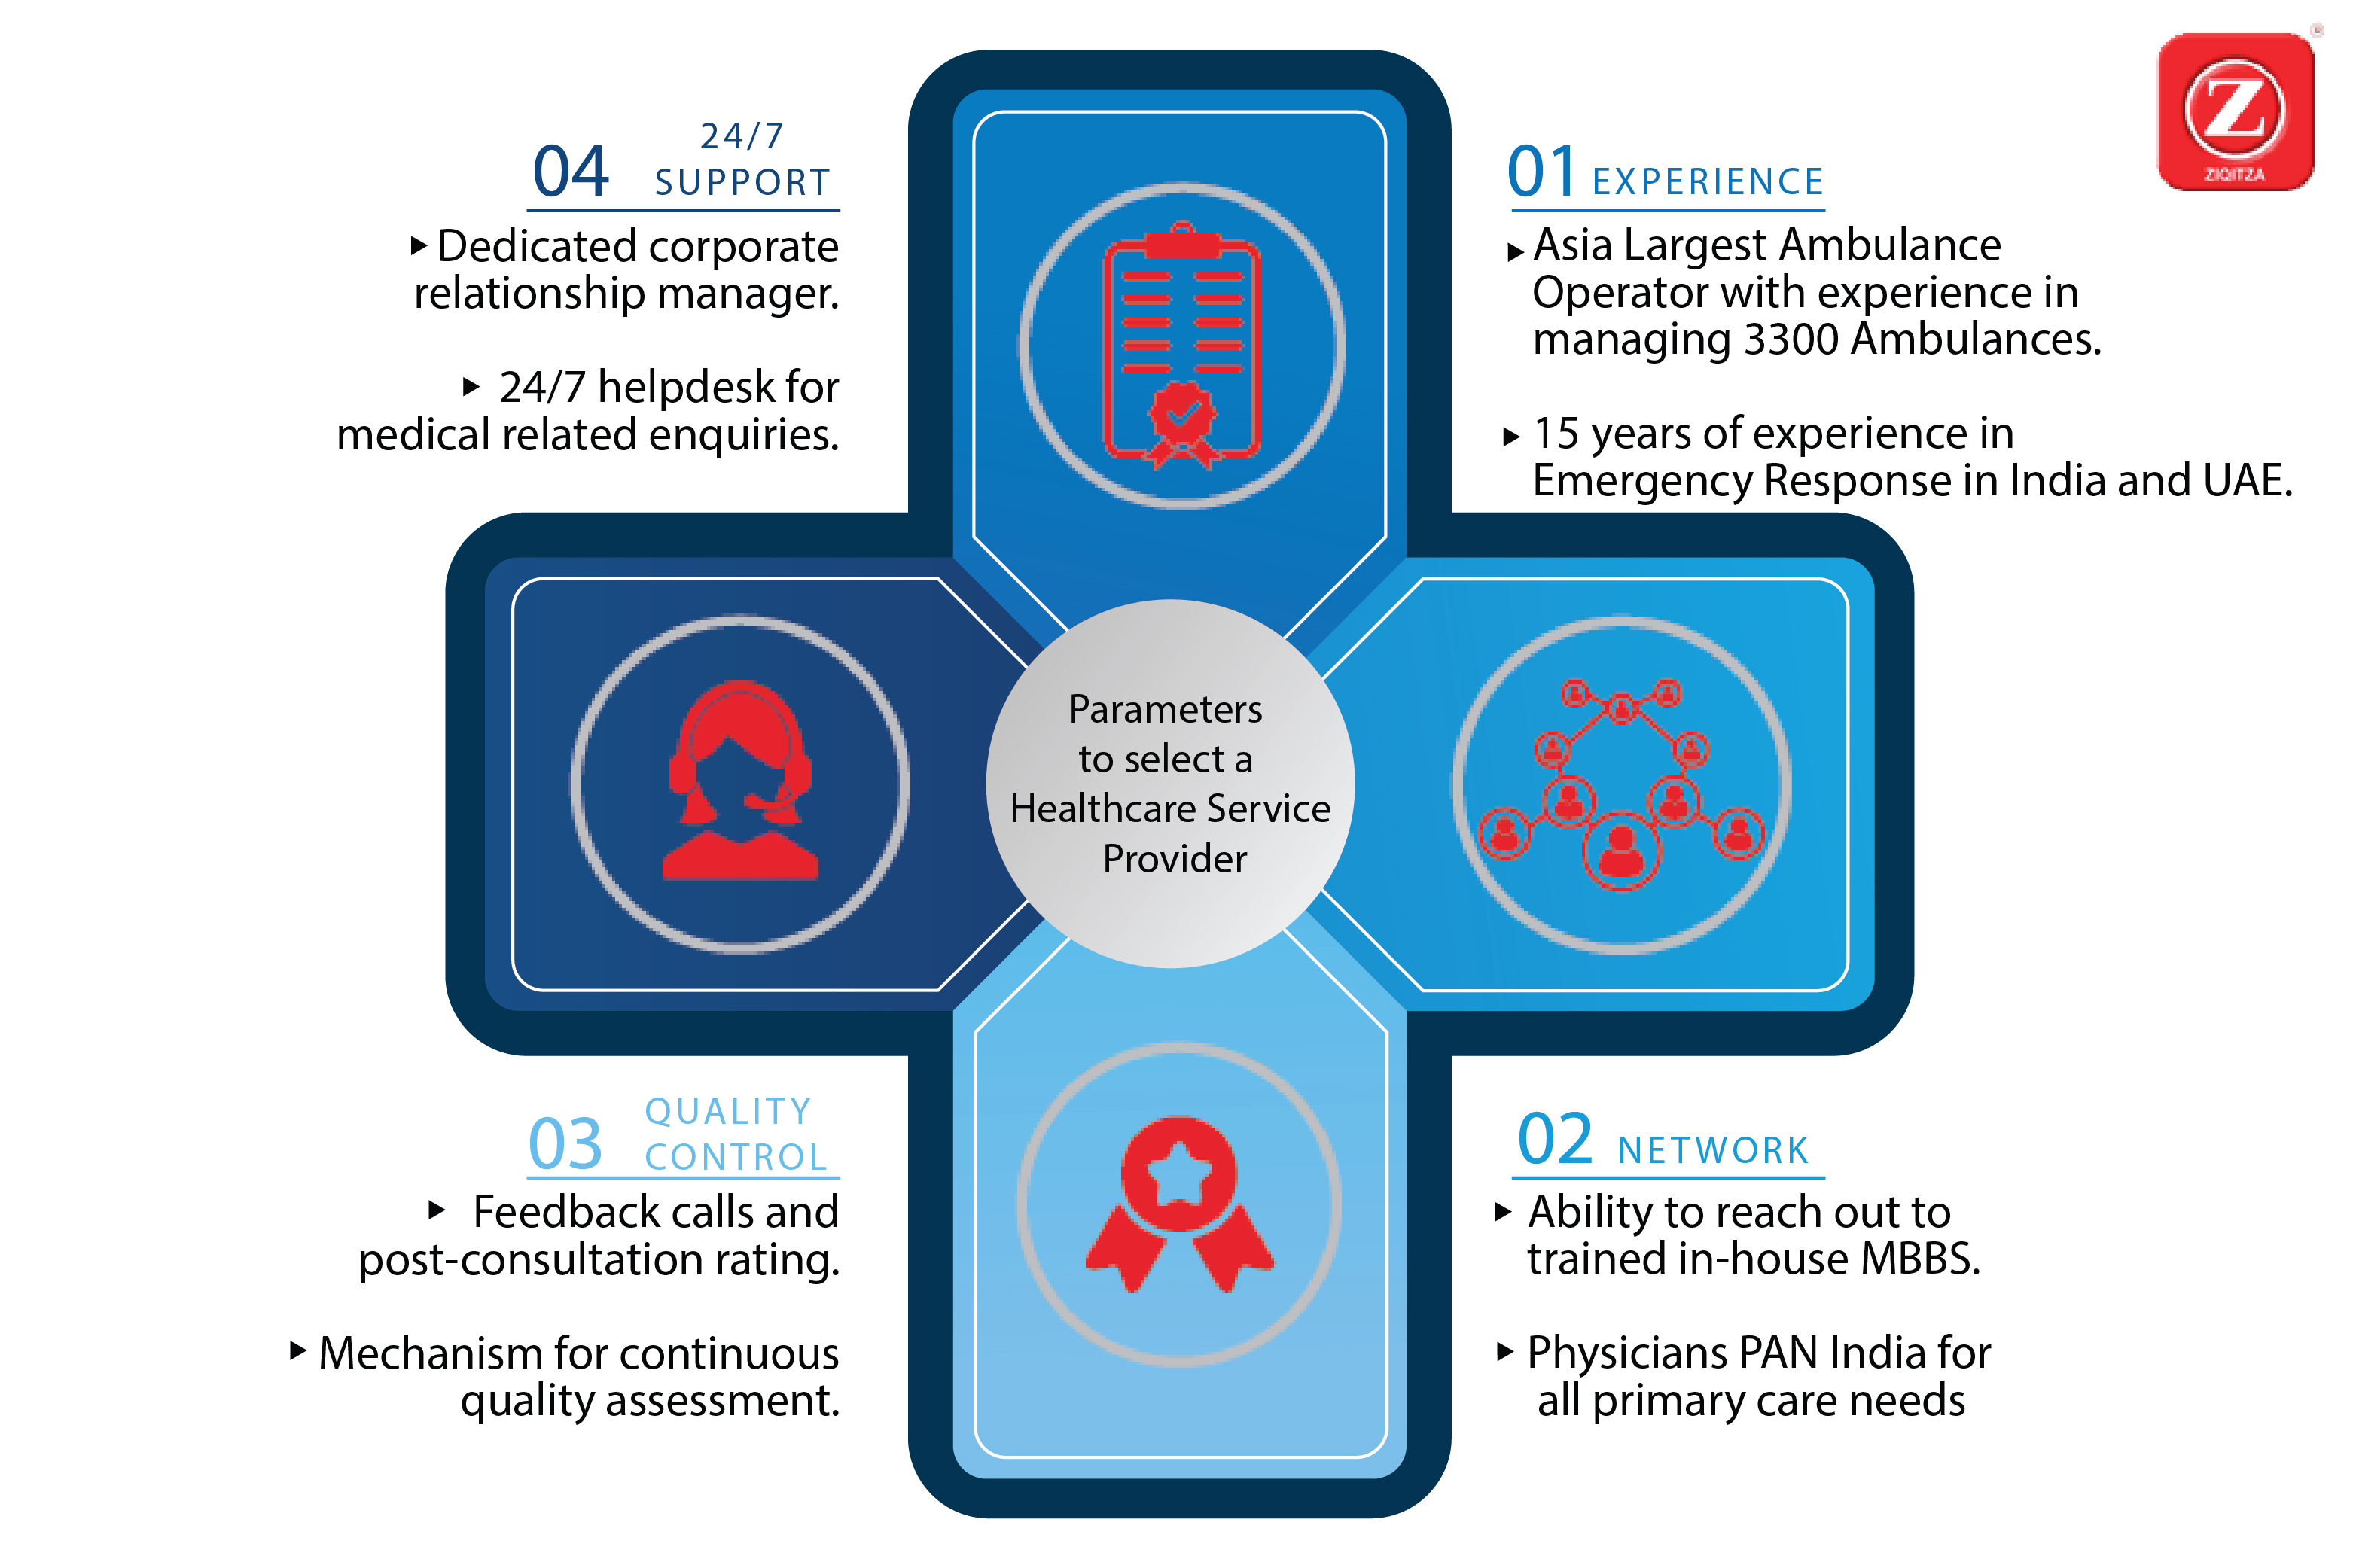 Parameters to select Healthcare Service Provider